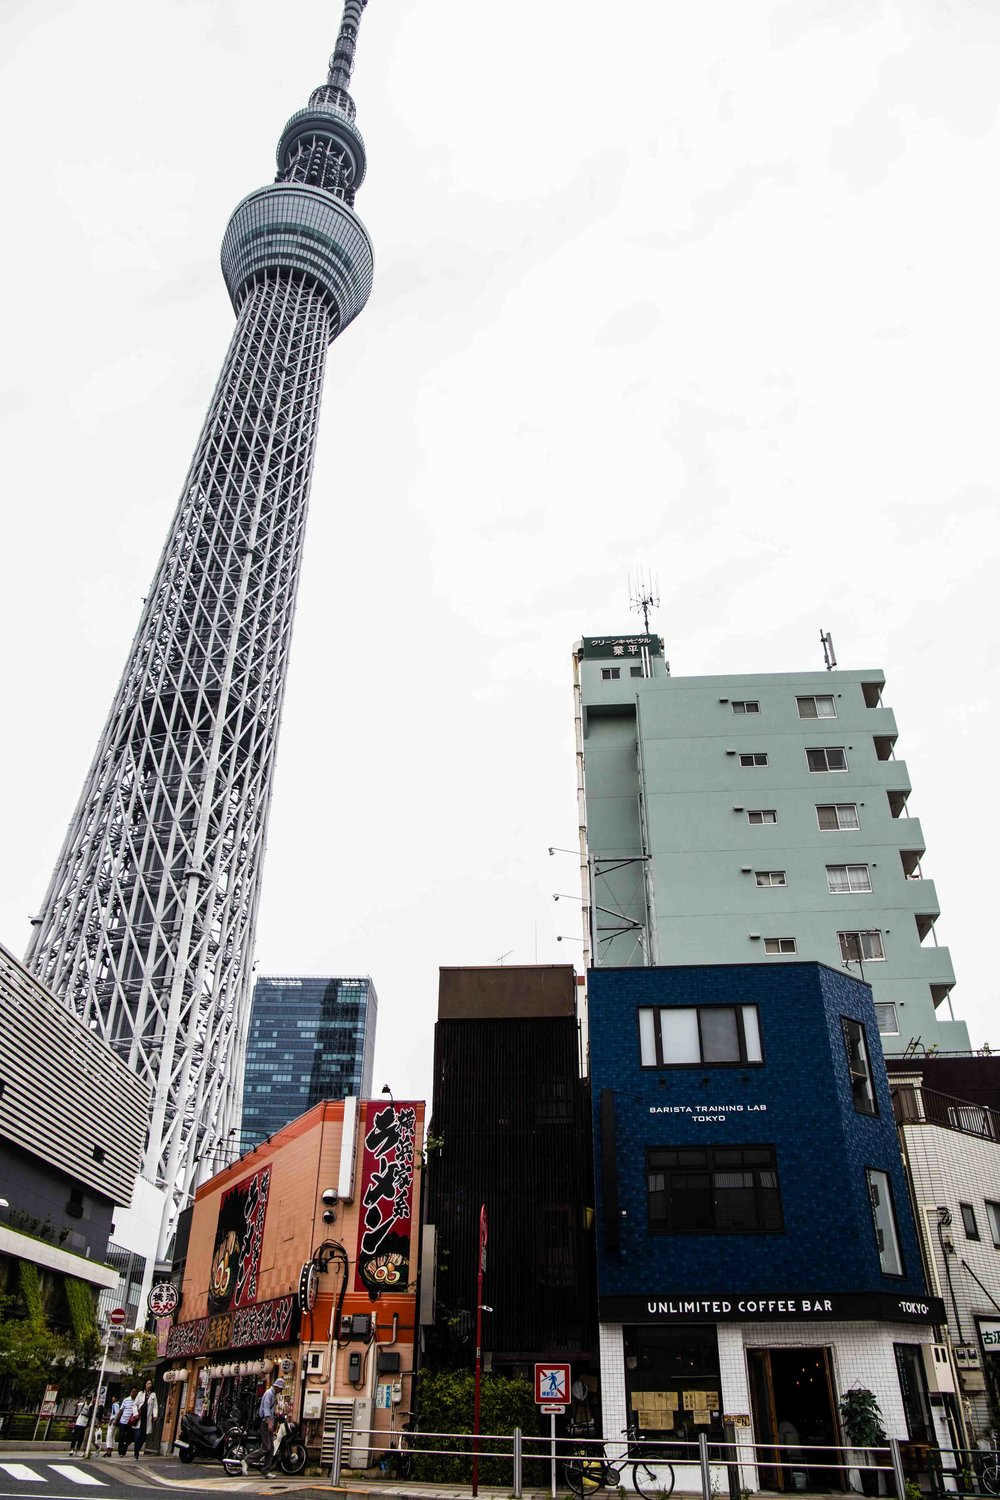 Skytree Unlimited Coffee Bar Tokyo